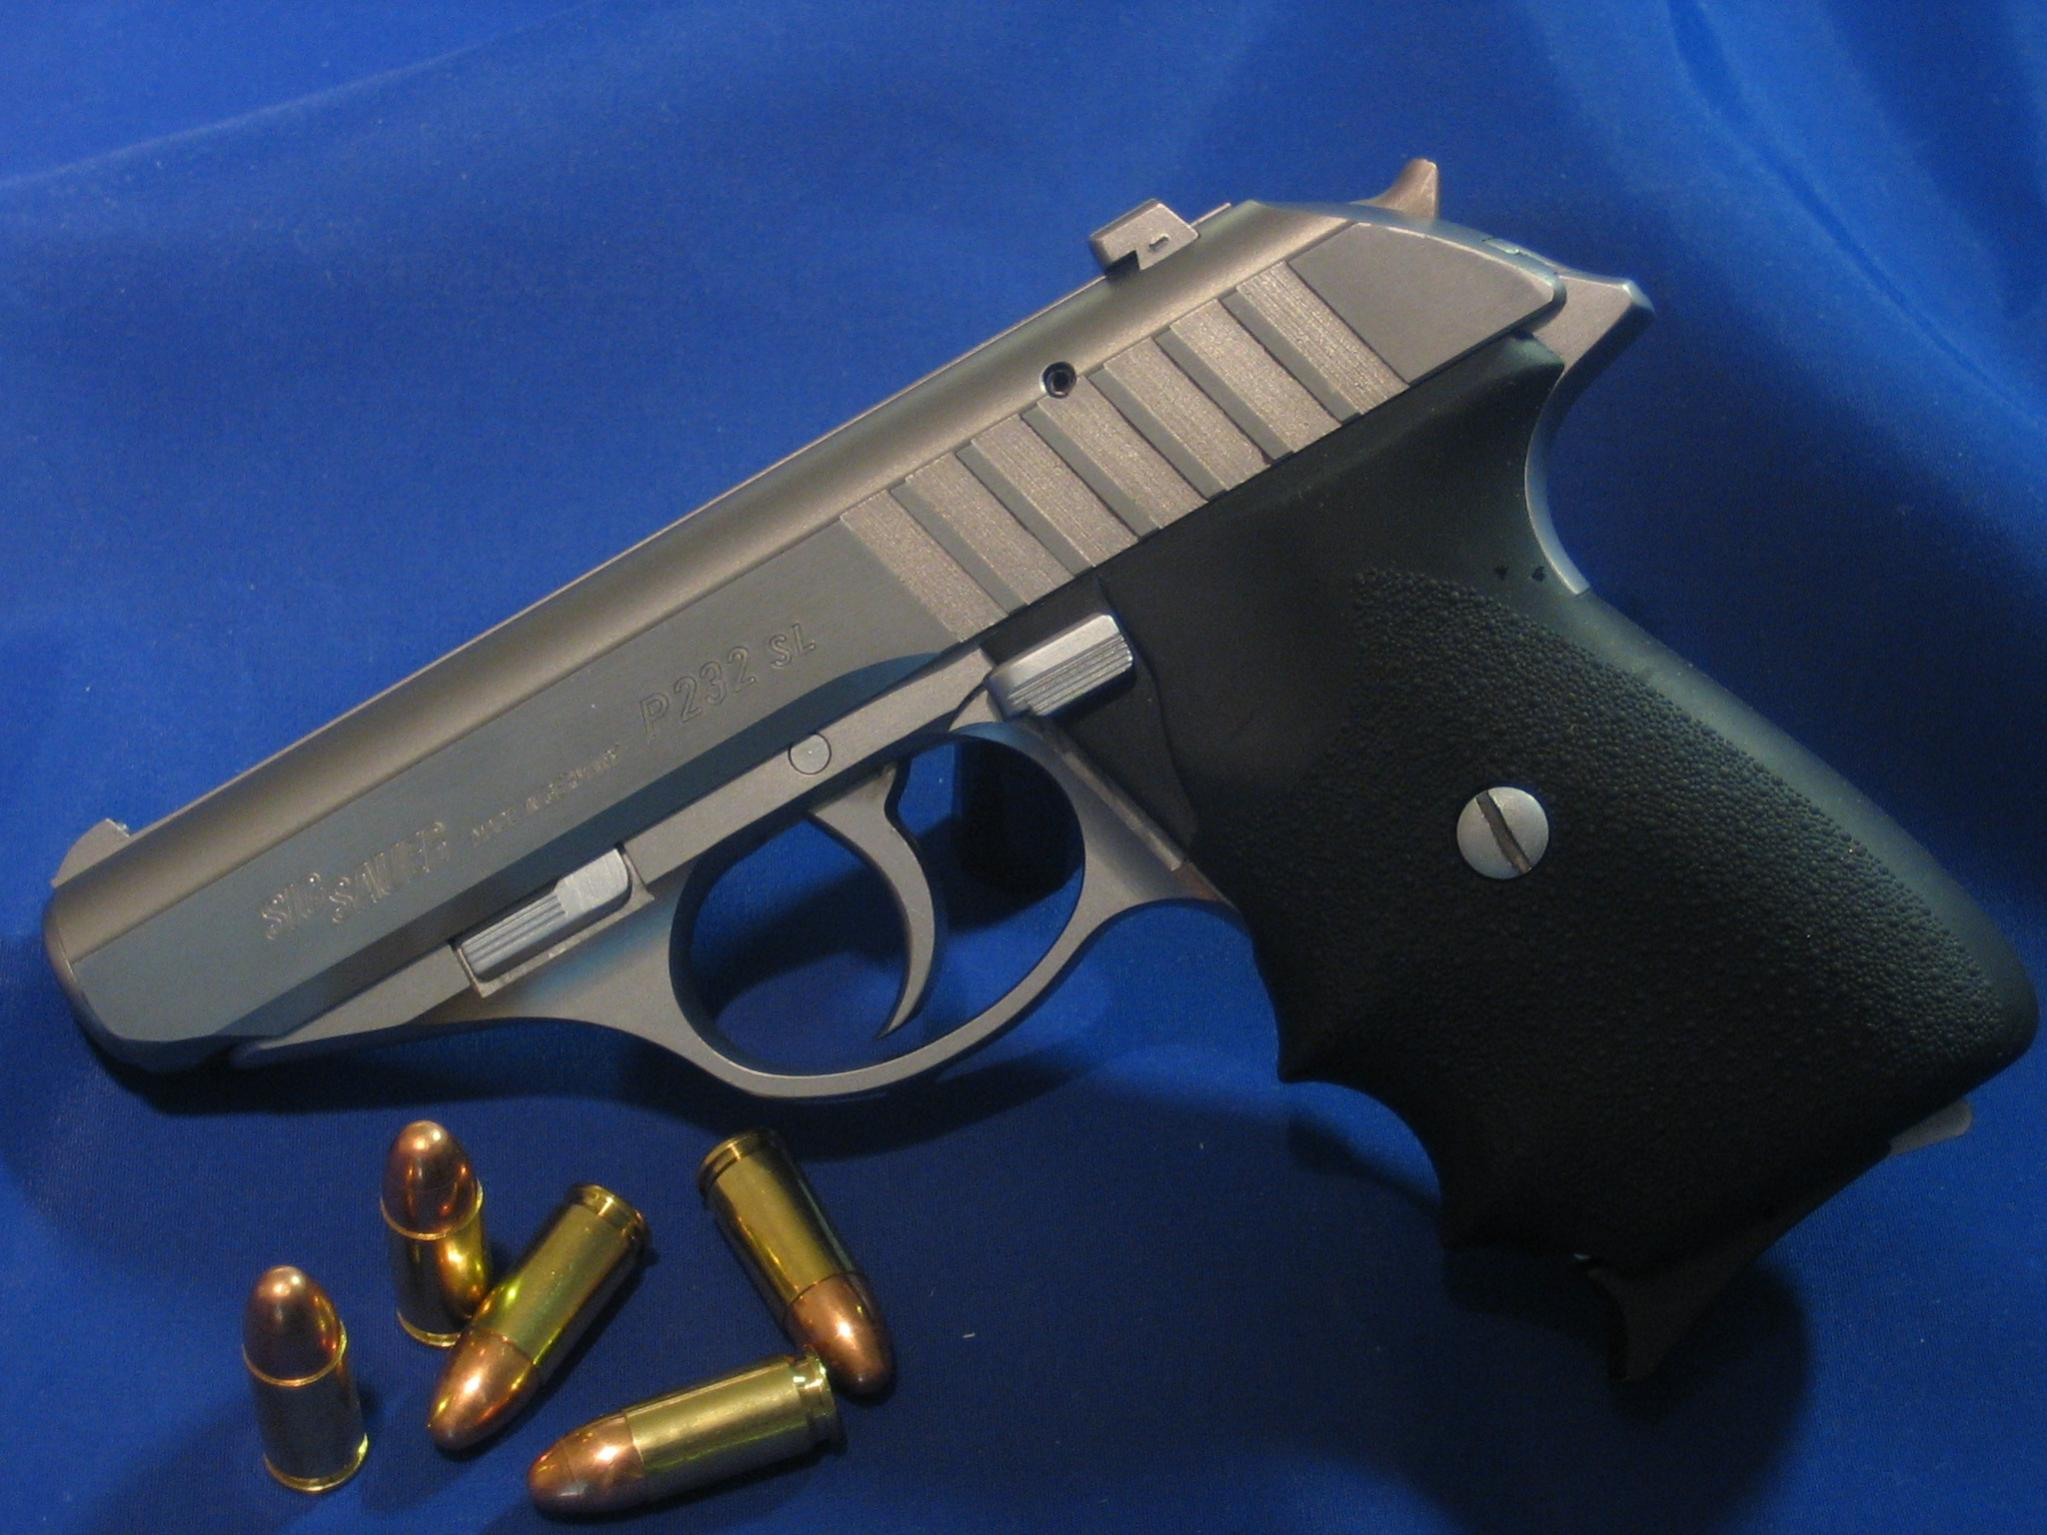 Newest Addition To The Arsenal...-sig-p232web.jpg